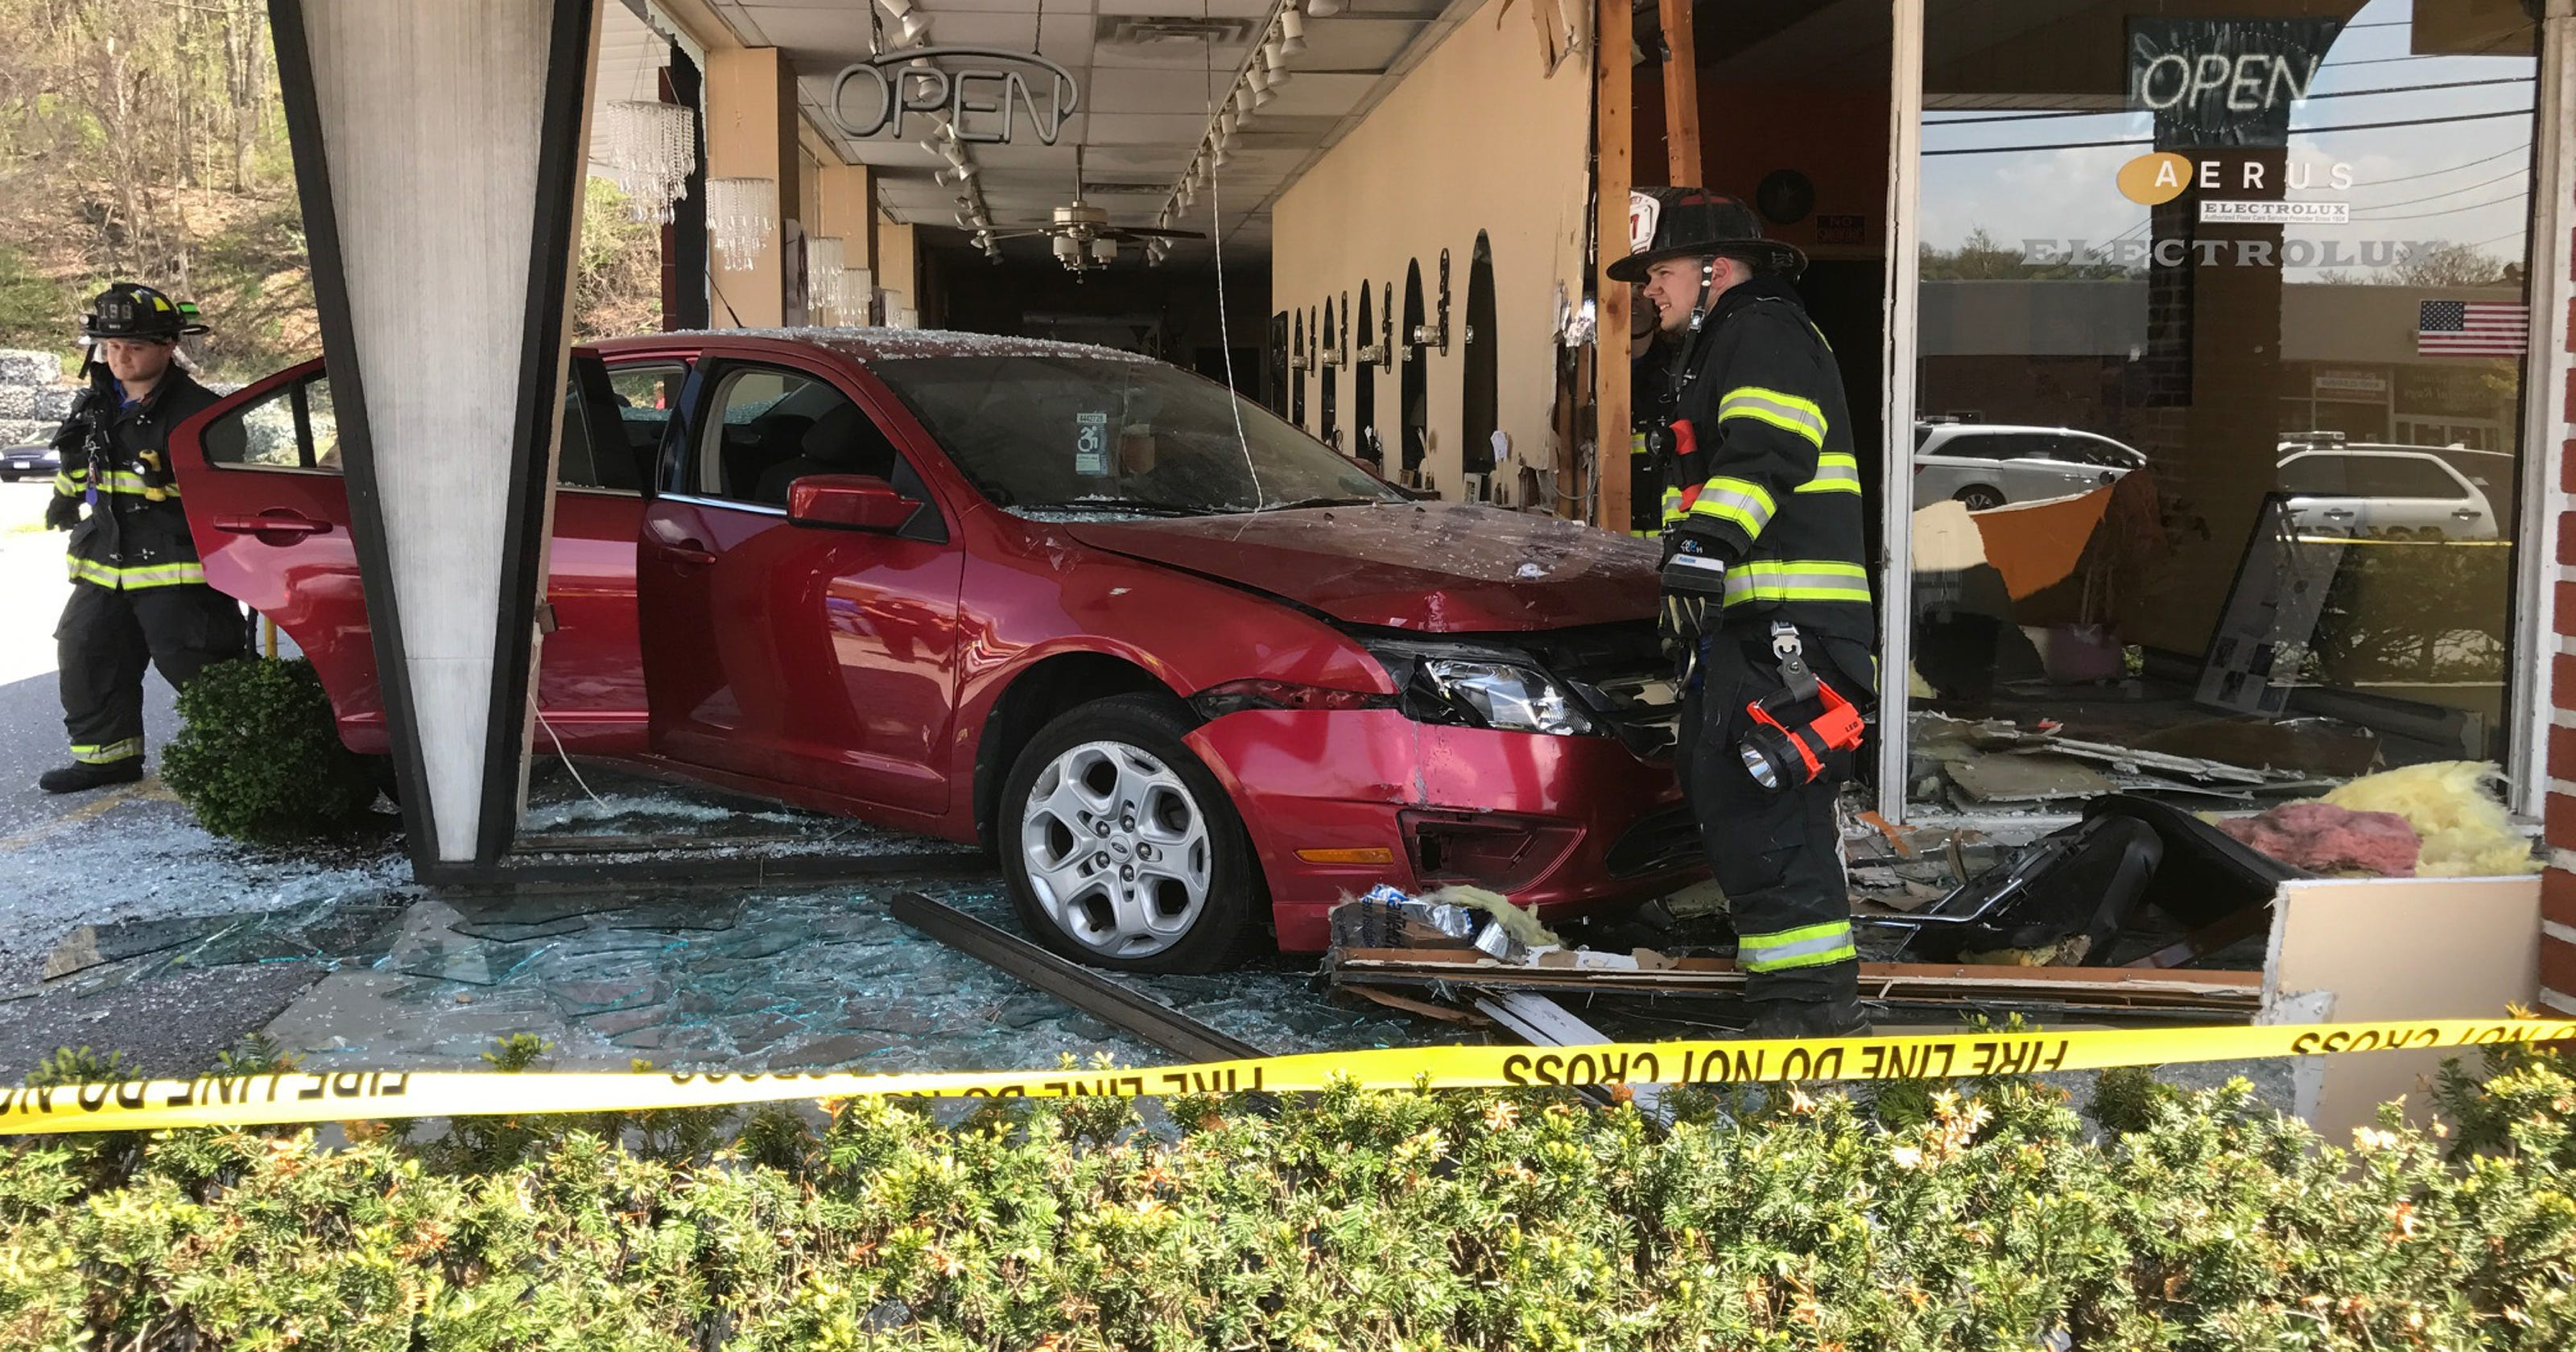 Why do drivers crash into buildings? Statistics and reasons why